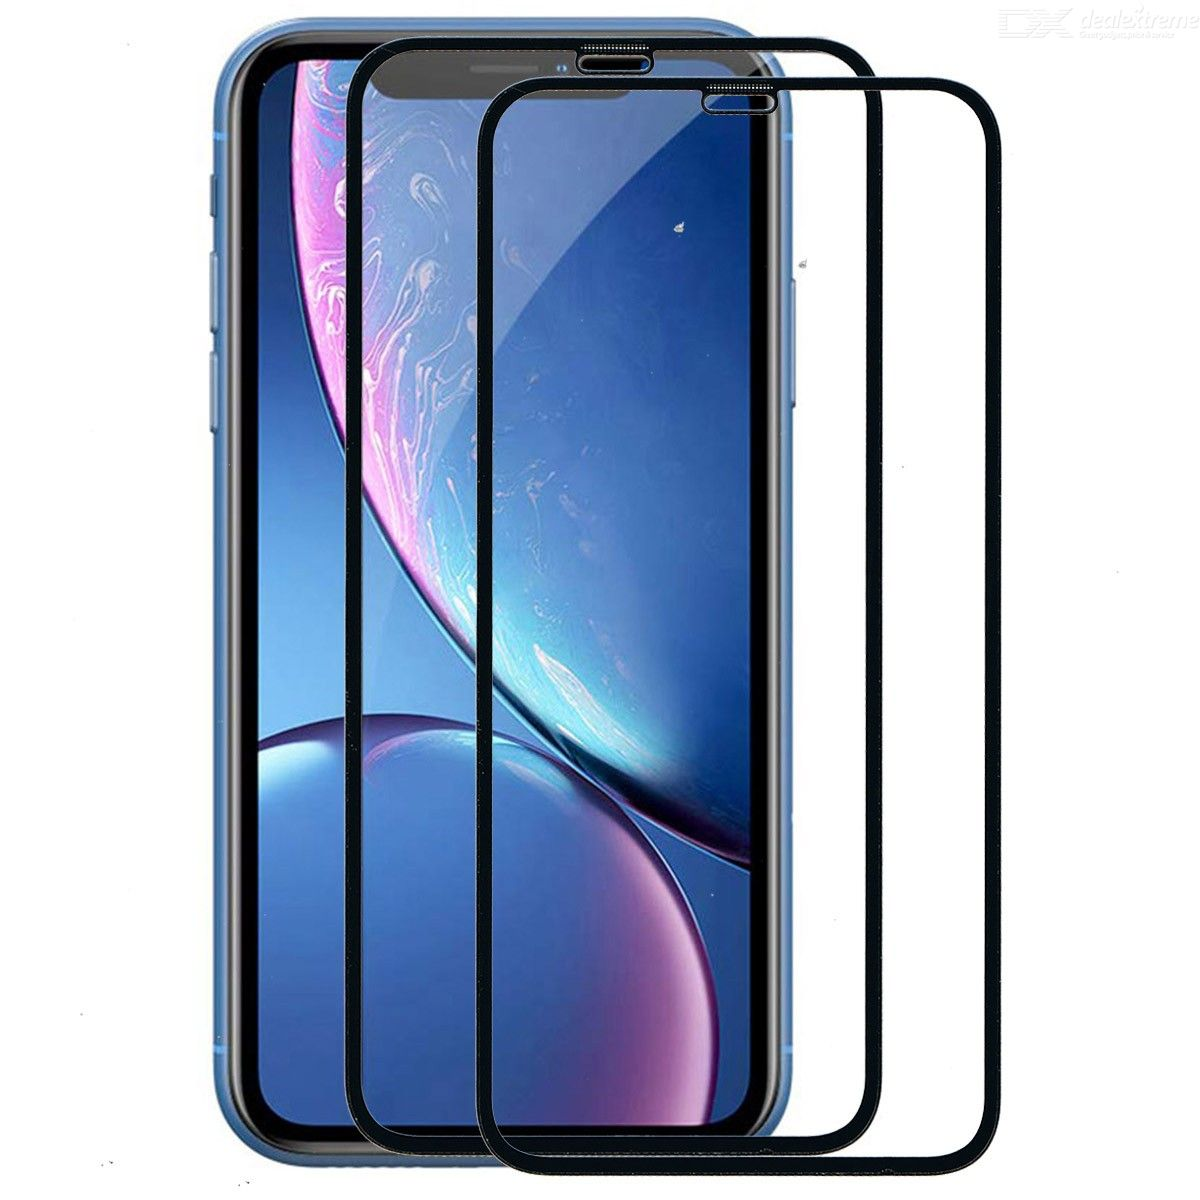 2pcs ASLING Full Cover Explosion-proof Screen Protector for iPhone 11 Pro / iPhone 11 / iPhone 11 Pro Max